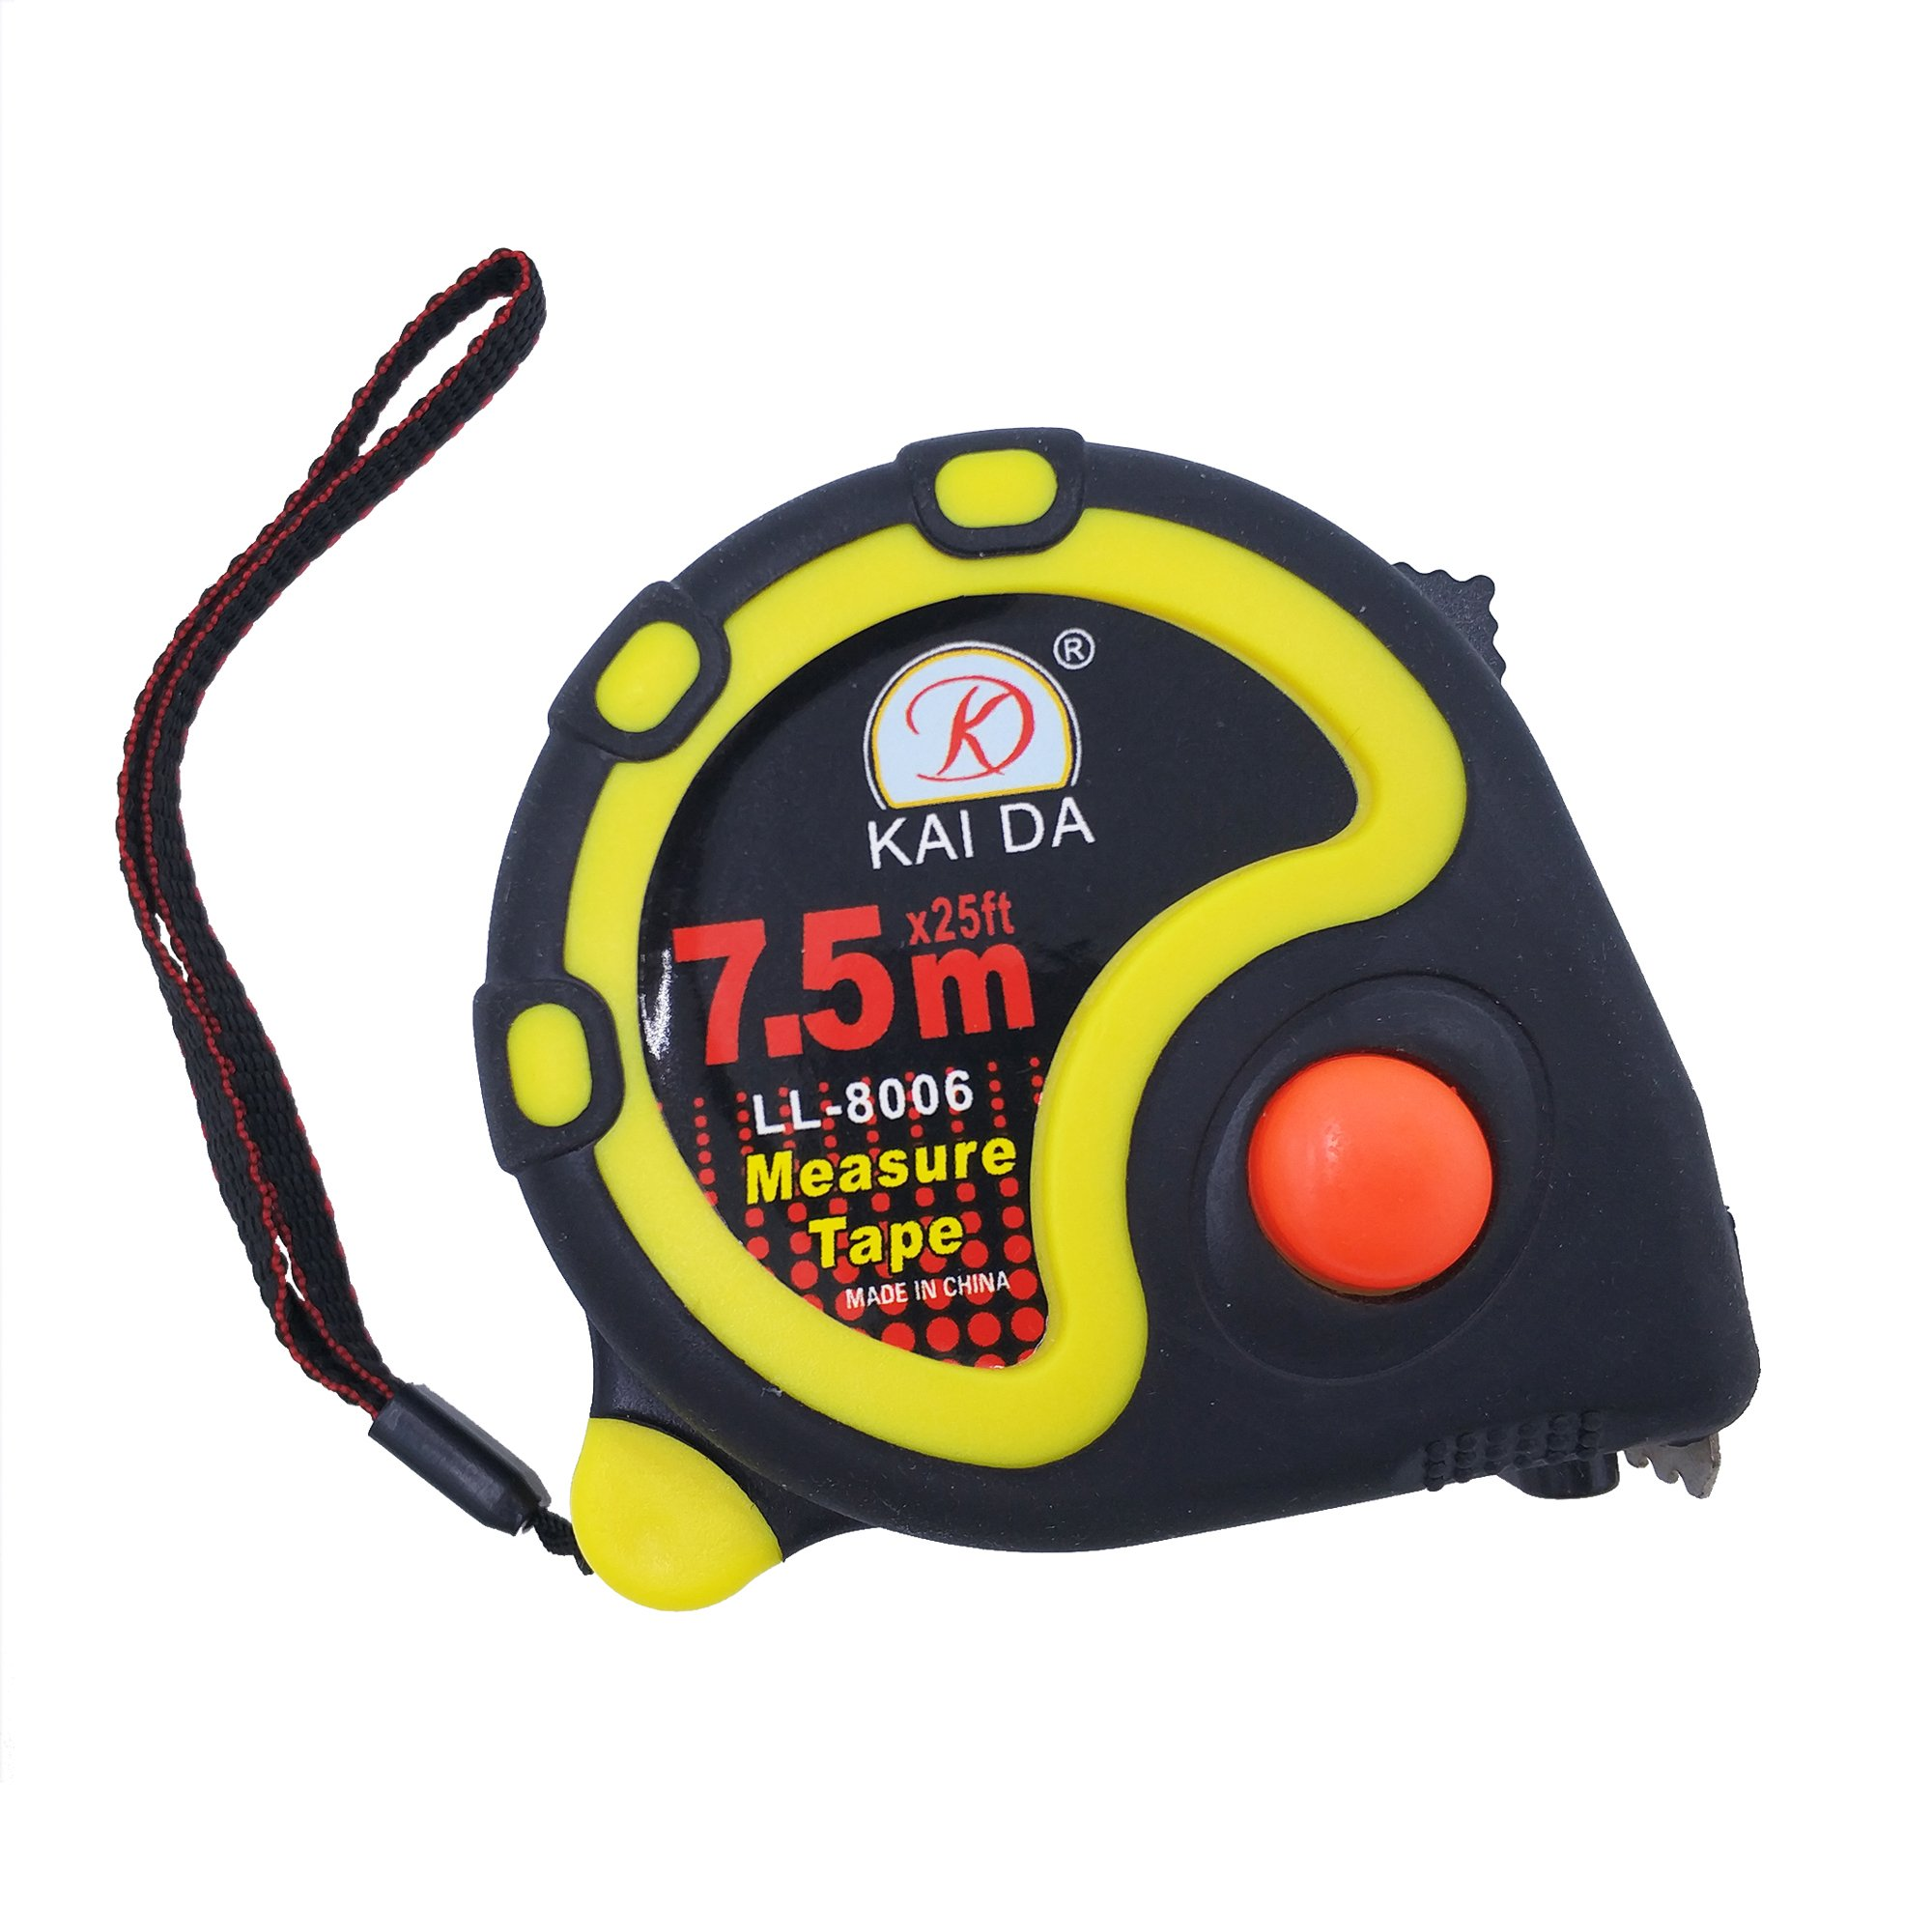 JSHOTS Tape Measure,Inches And Metric Measurement 25ft(7.5m), Tape Measure Retractable,Measuring Tape,Strong Belt Clip,Impact Resistant Rubber Covered Case by JSHOTS (Image #1)